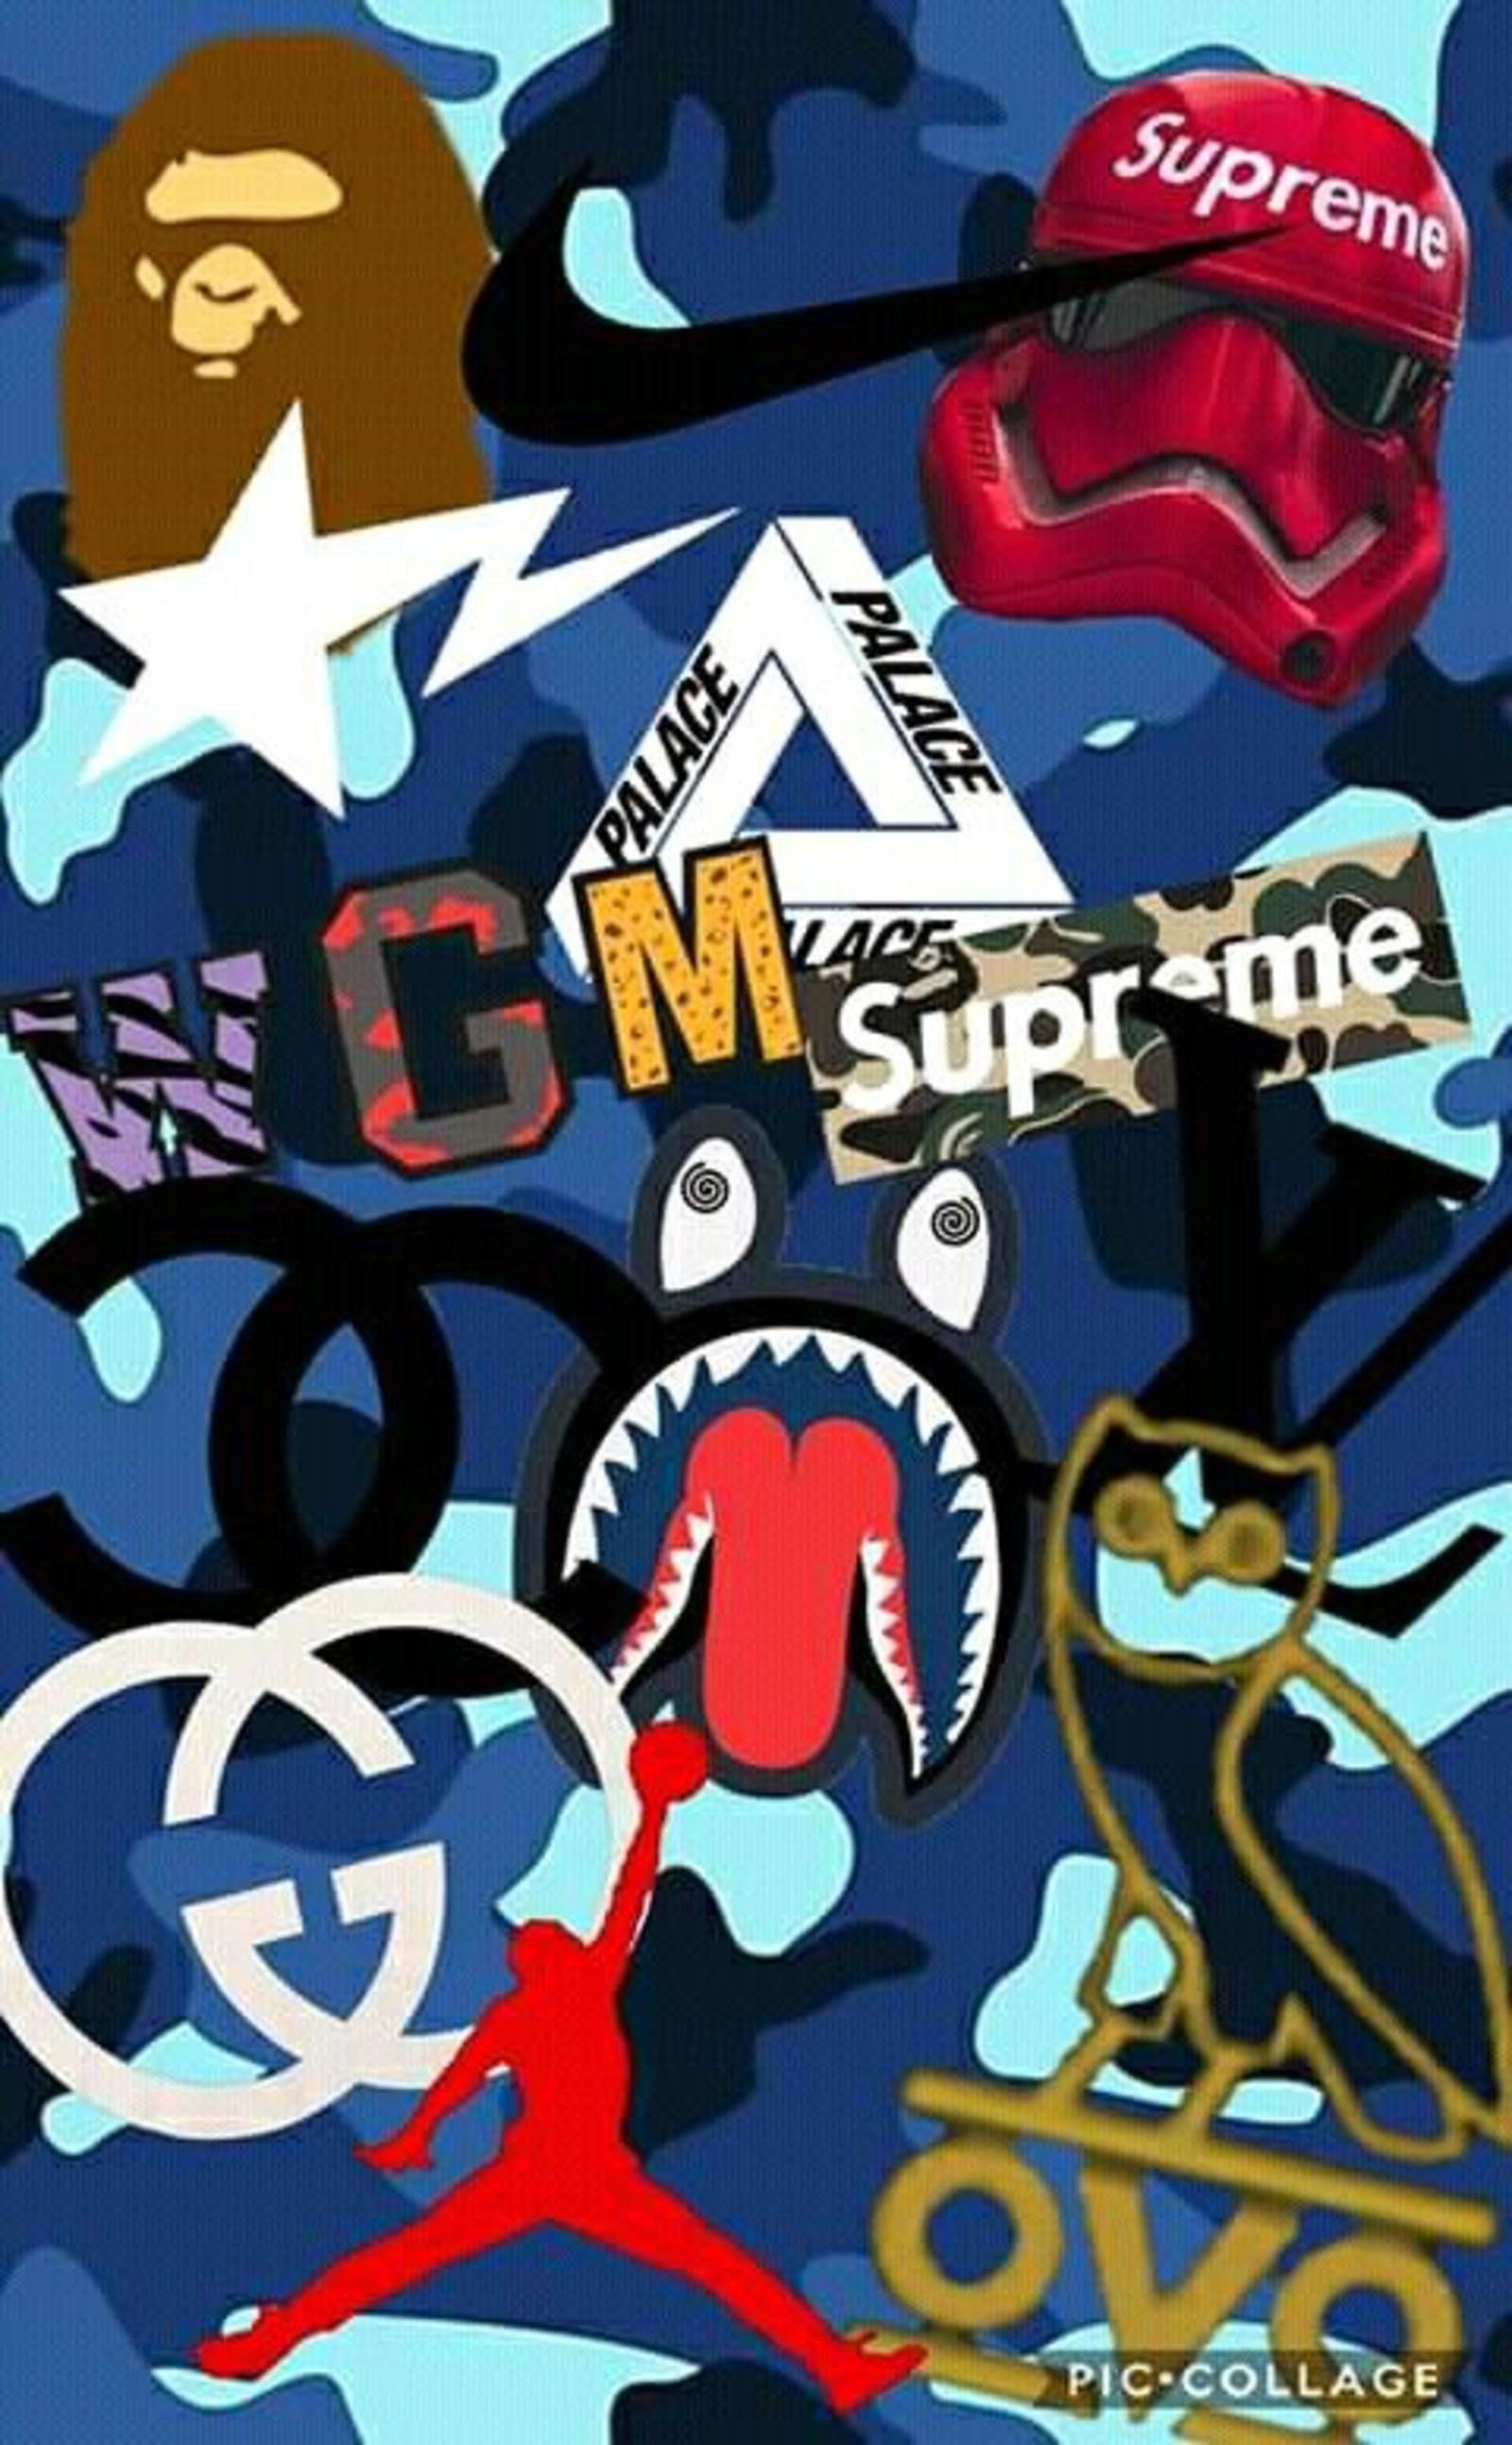 Sick Wallpapers For Iphone 5 Hypebeast Bape Wallpapers Wallpaper Cave